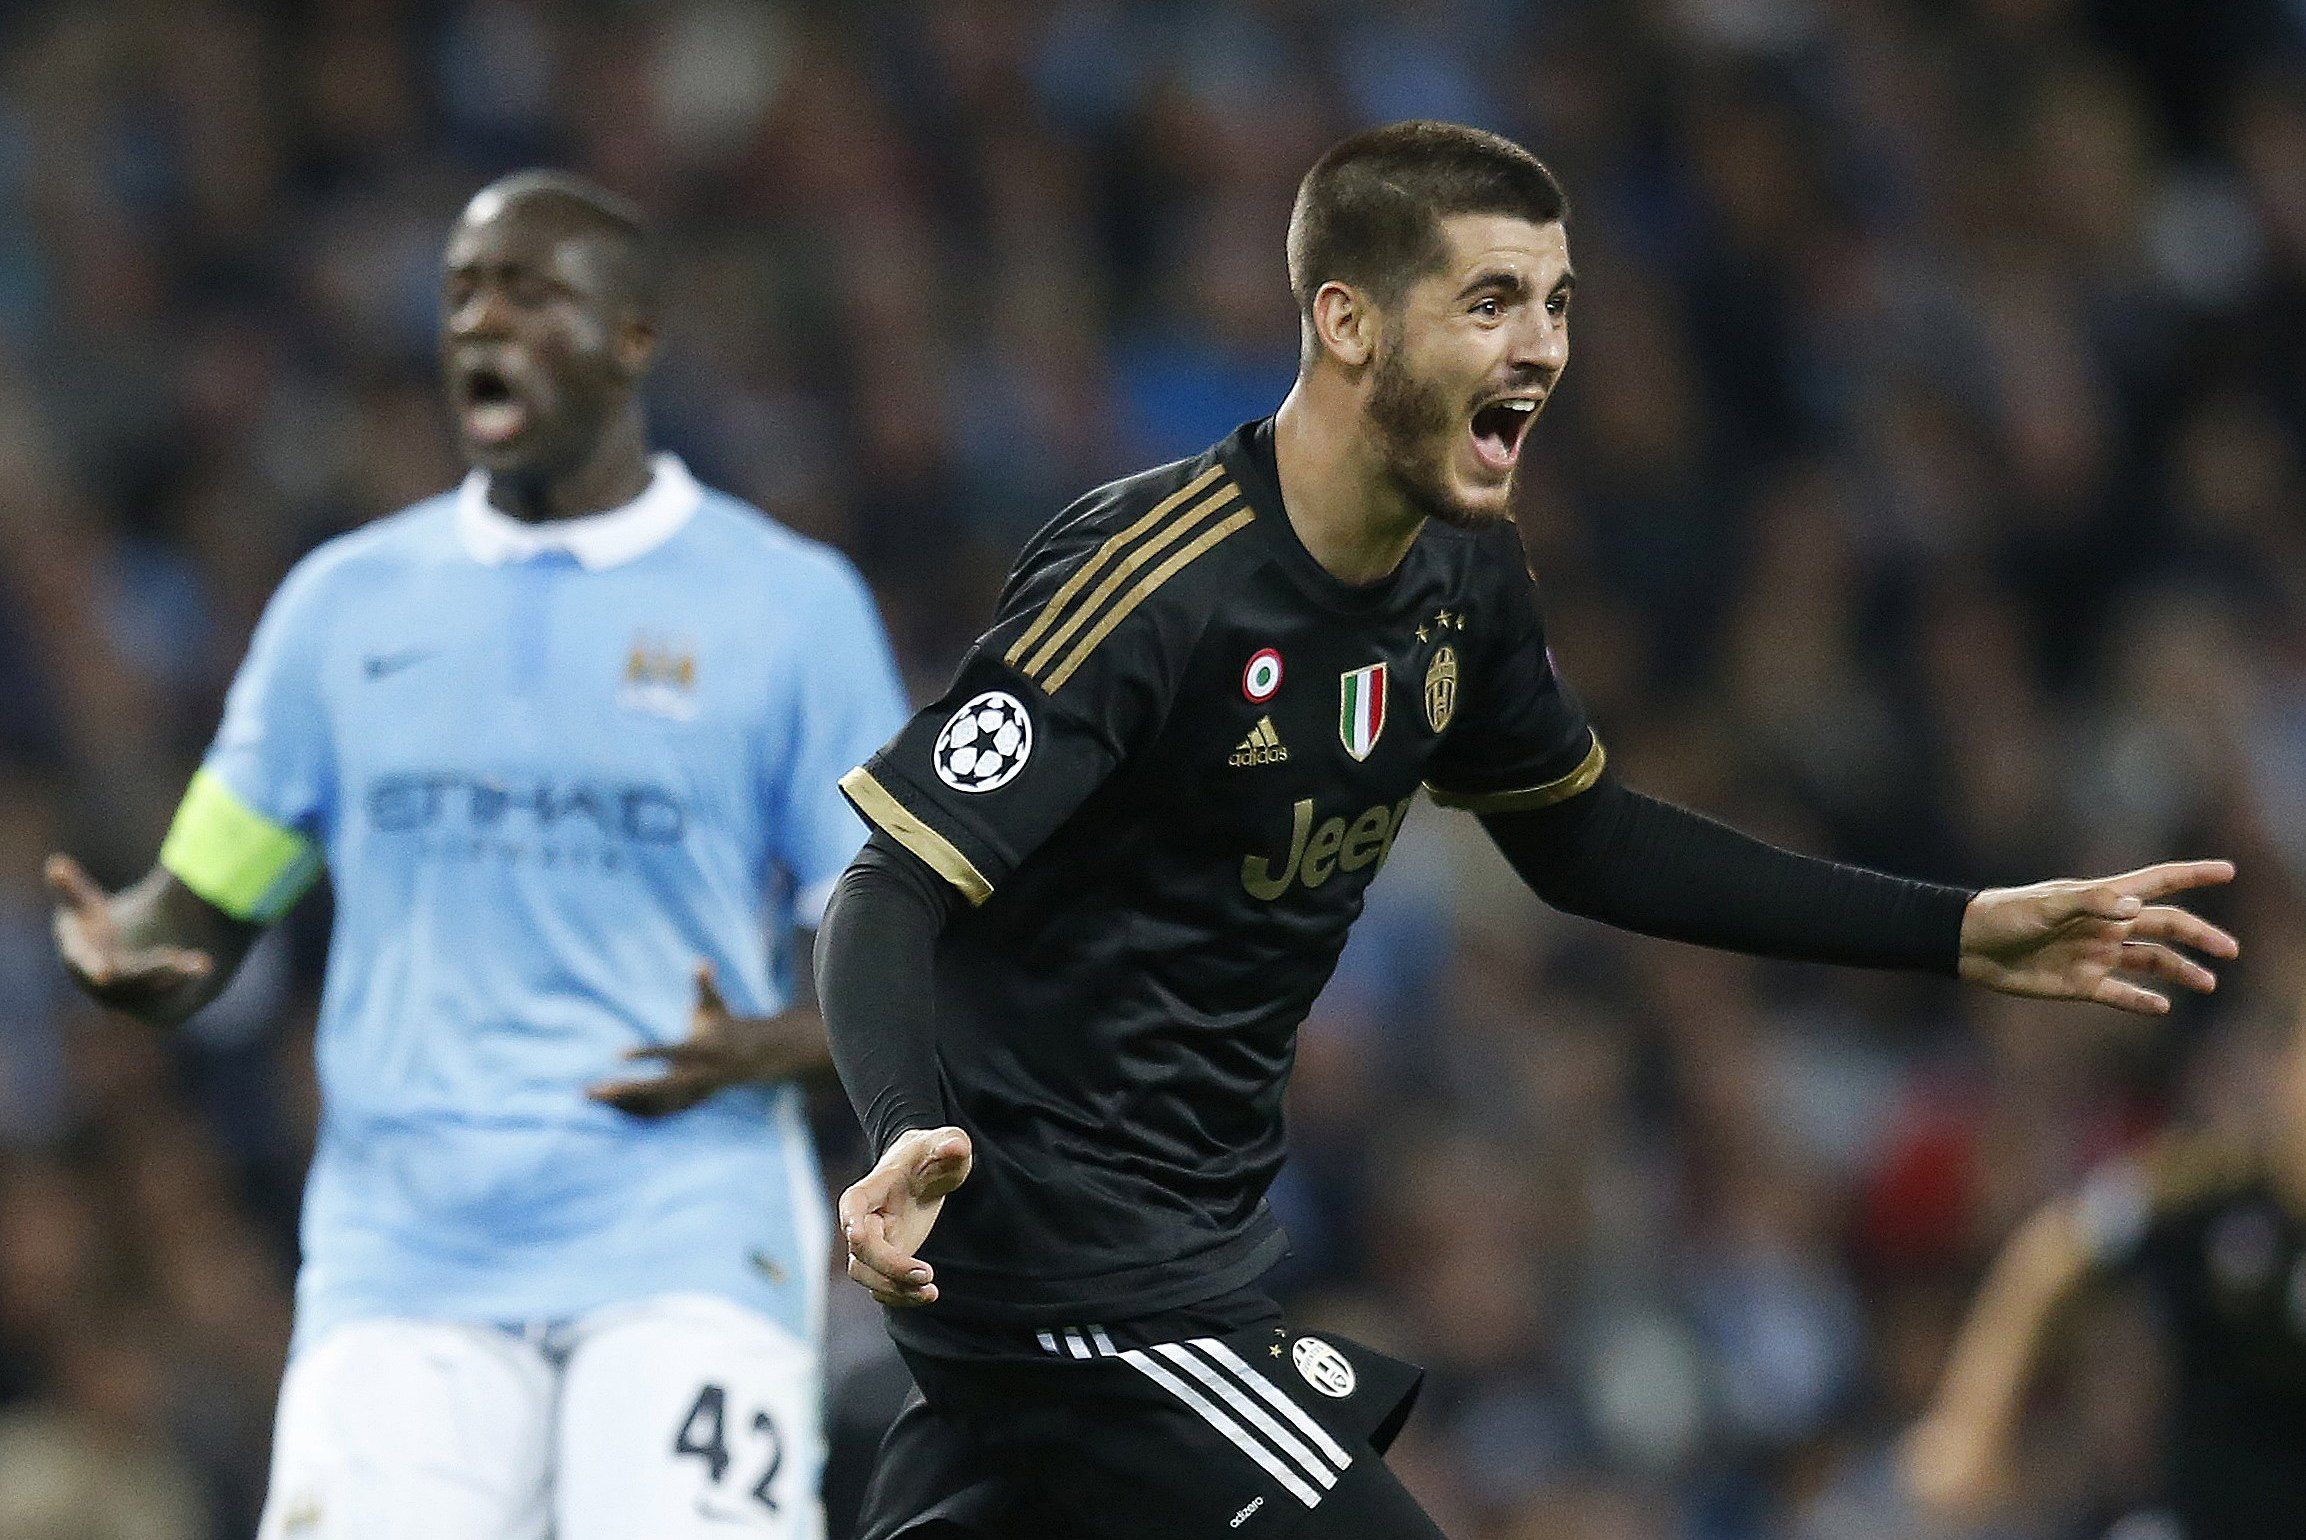 Manchester City Vs Juventus Score And Reaction From 2015 Champions League Bleacher Report Latest News Videos And Highlights